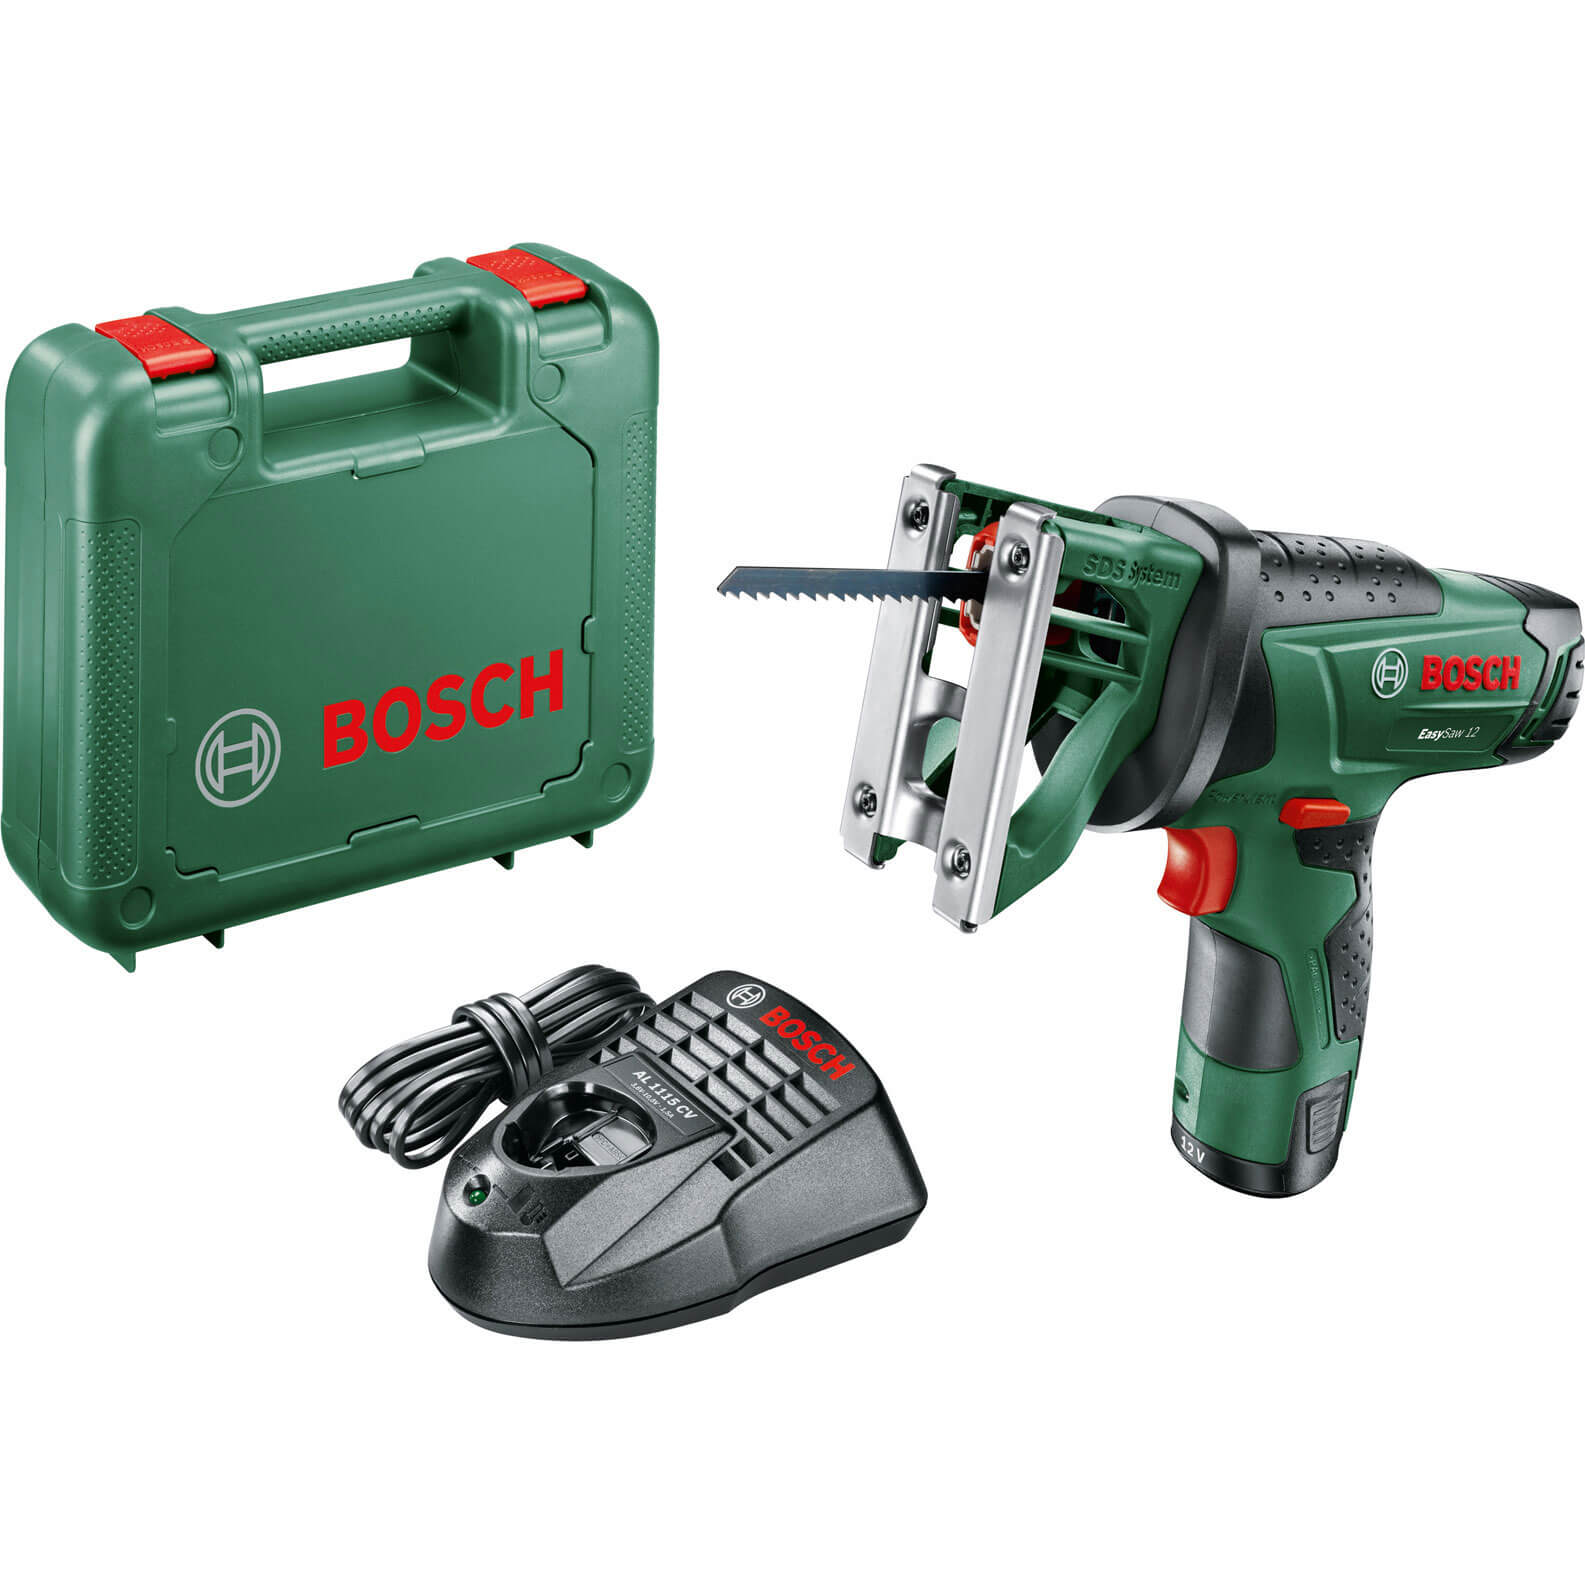 Bosch EASYSAW 12v Cordless Jigsaw 1 x 2.5ah Liion Charger Case